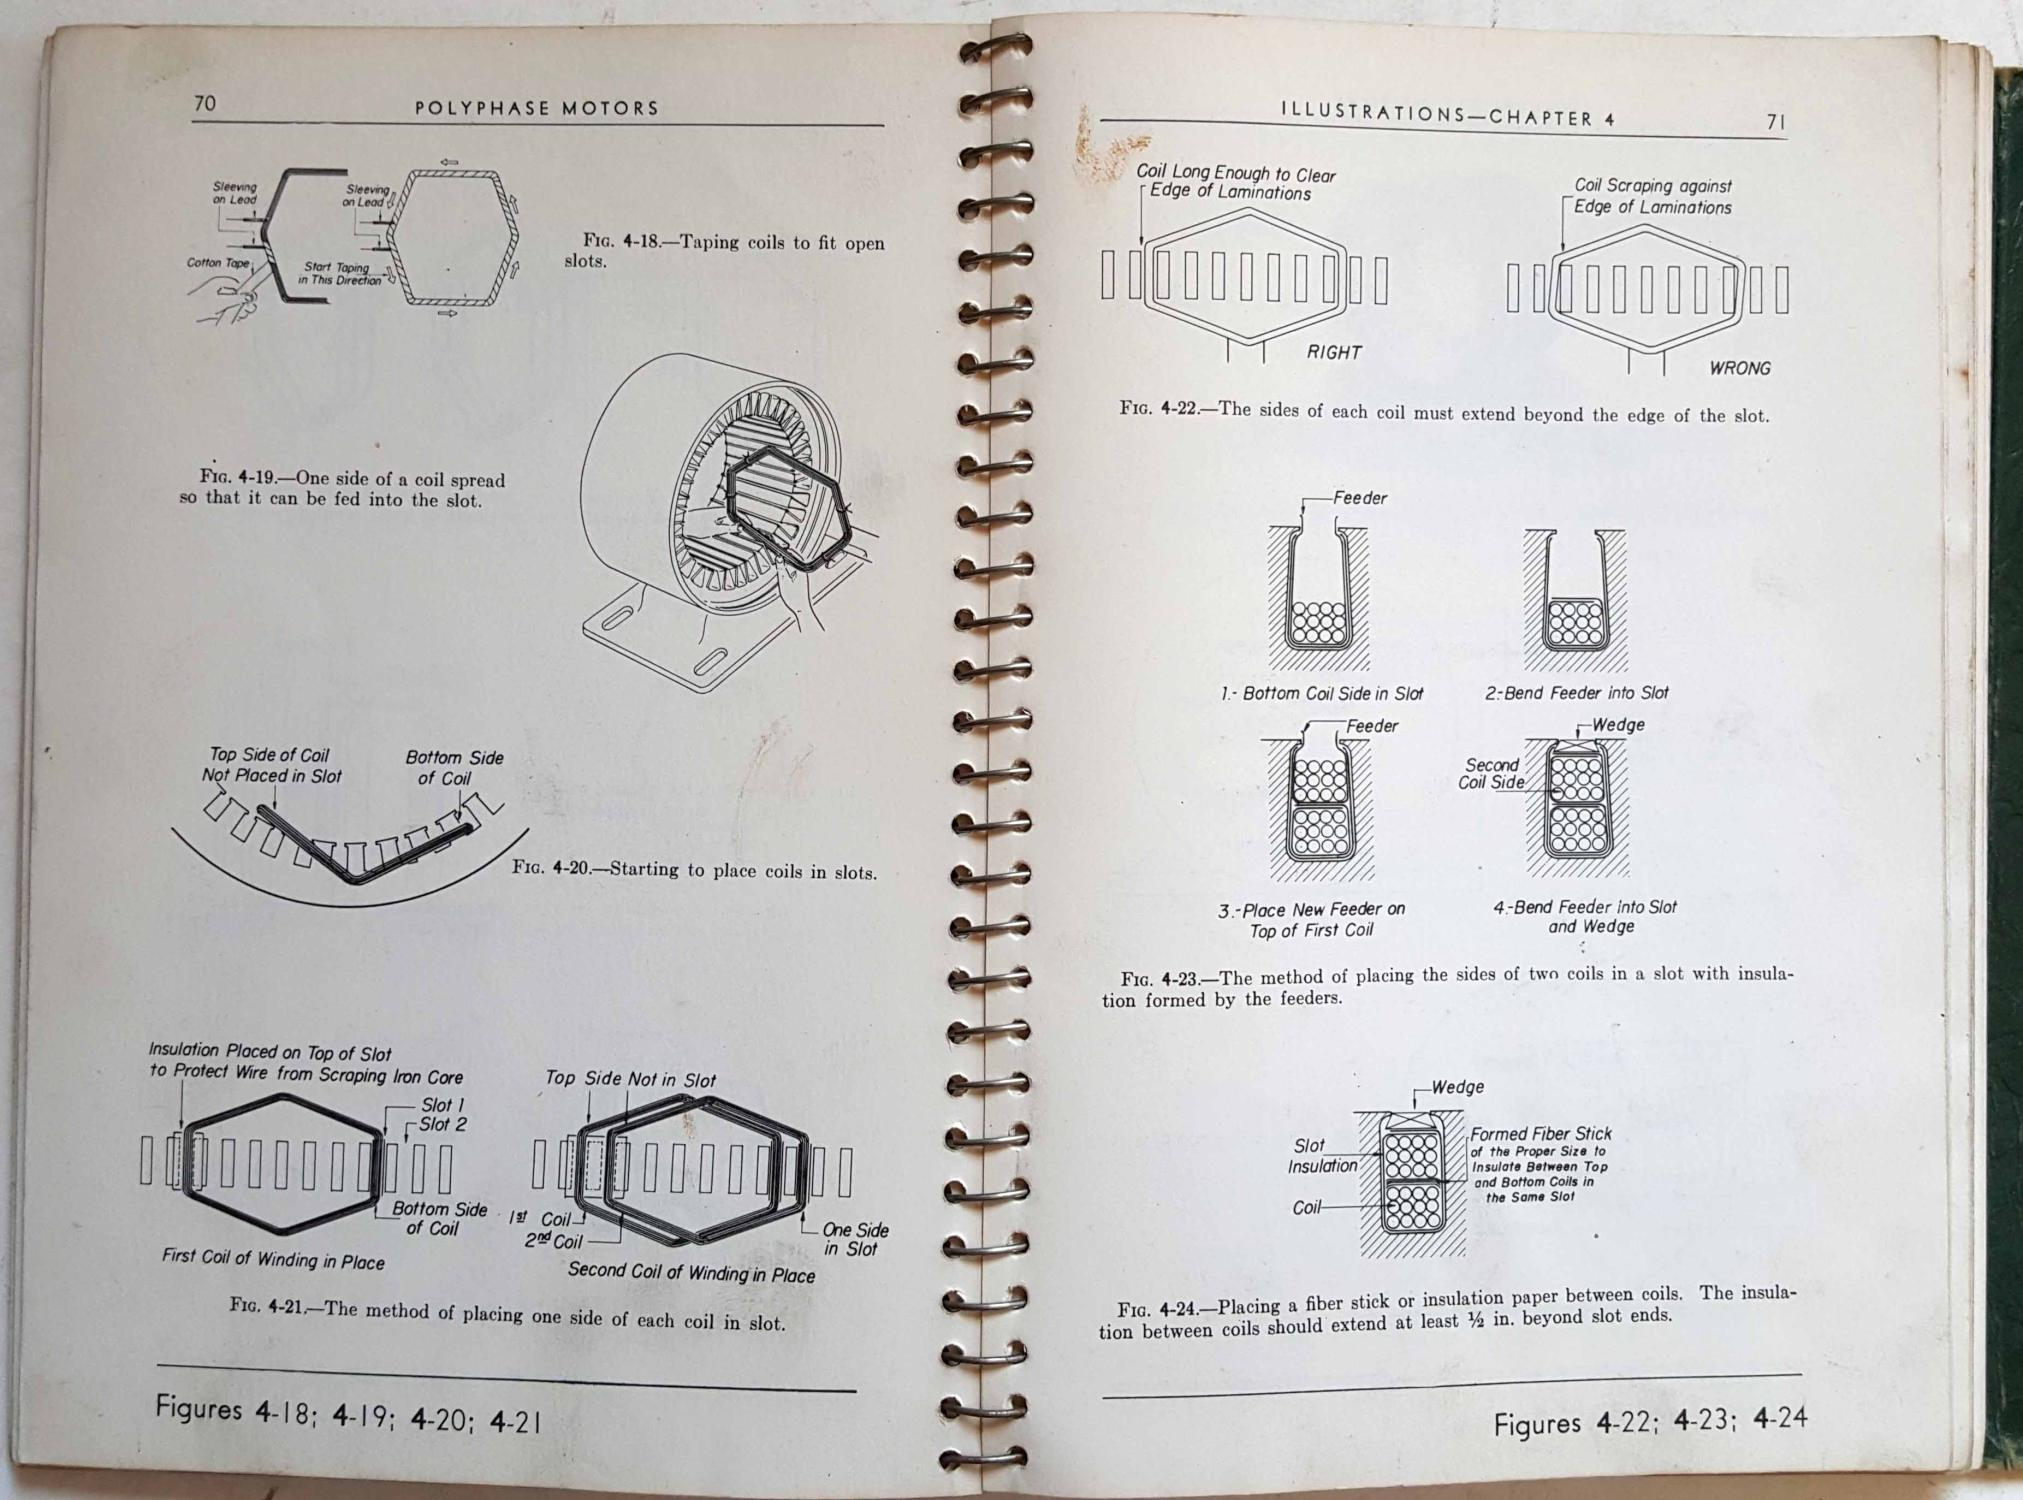 Electric Motor Repair: Illustrations and Study Questions, Text and ...